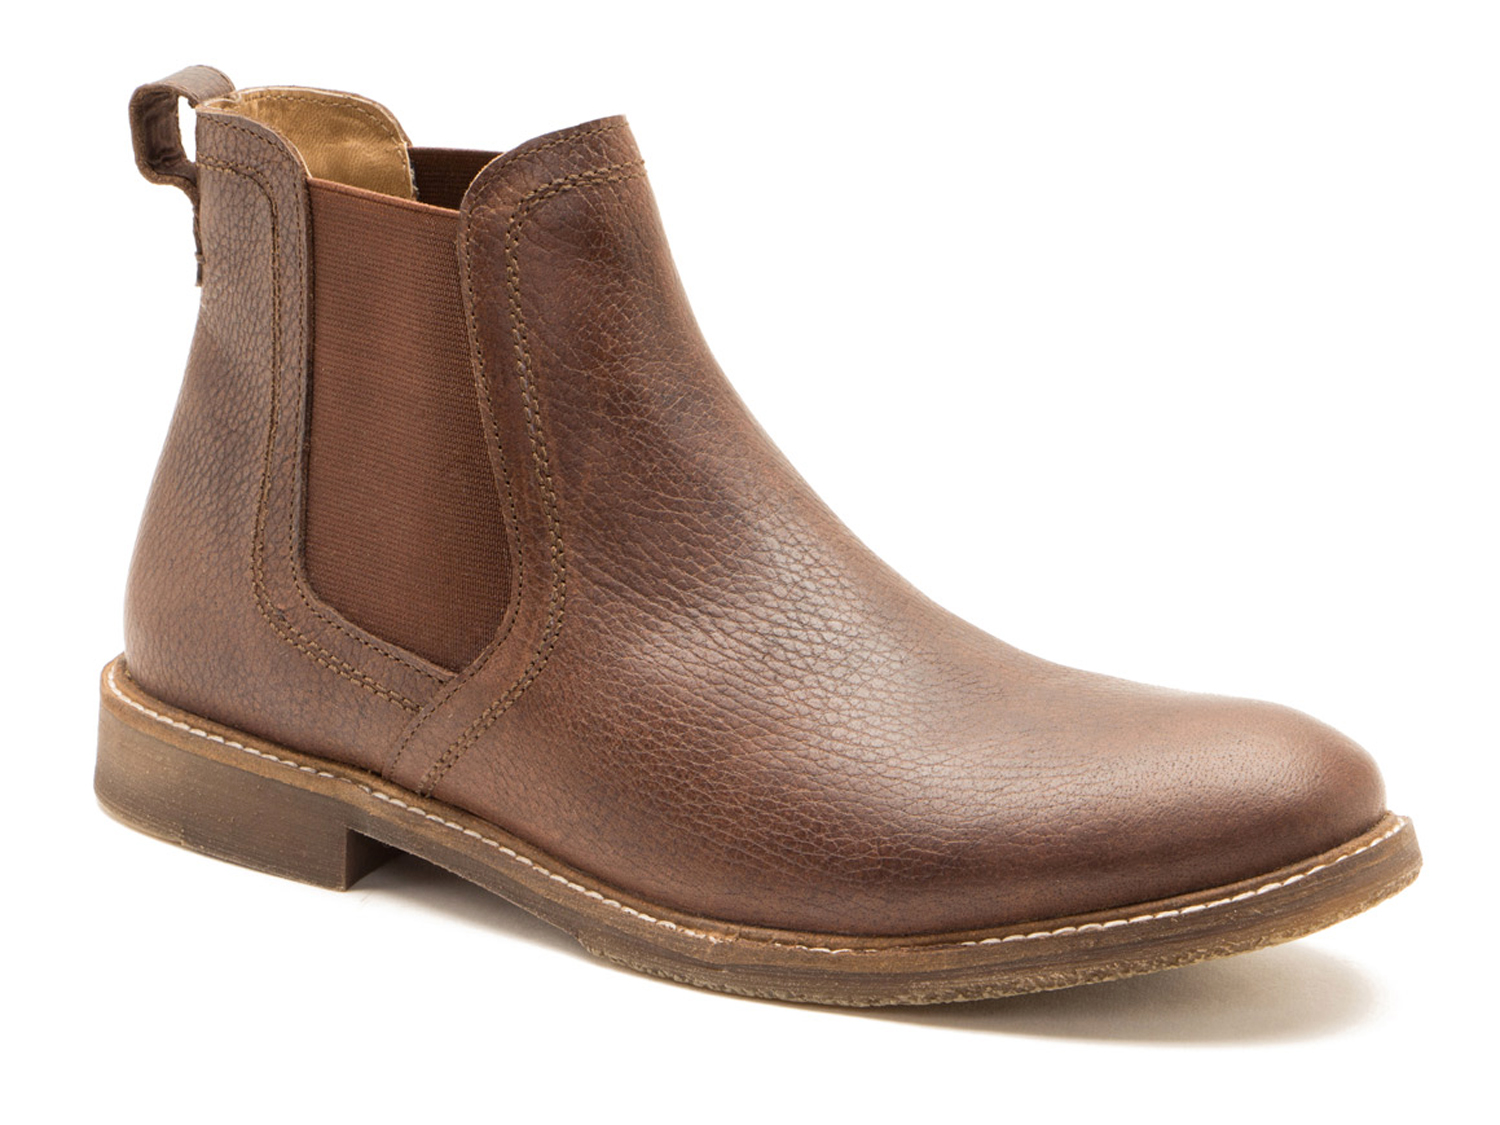 10fcfc643b91 This is a fantastic rugged pair of chelsea boots from Red Tape. They have a  great modern look in this milled leather with the white stitching details.